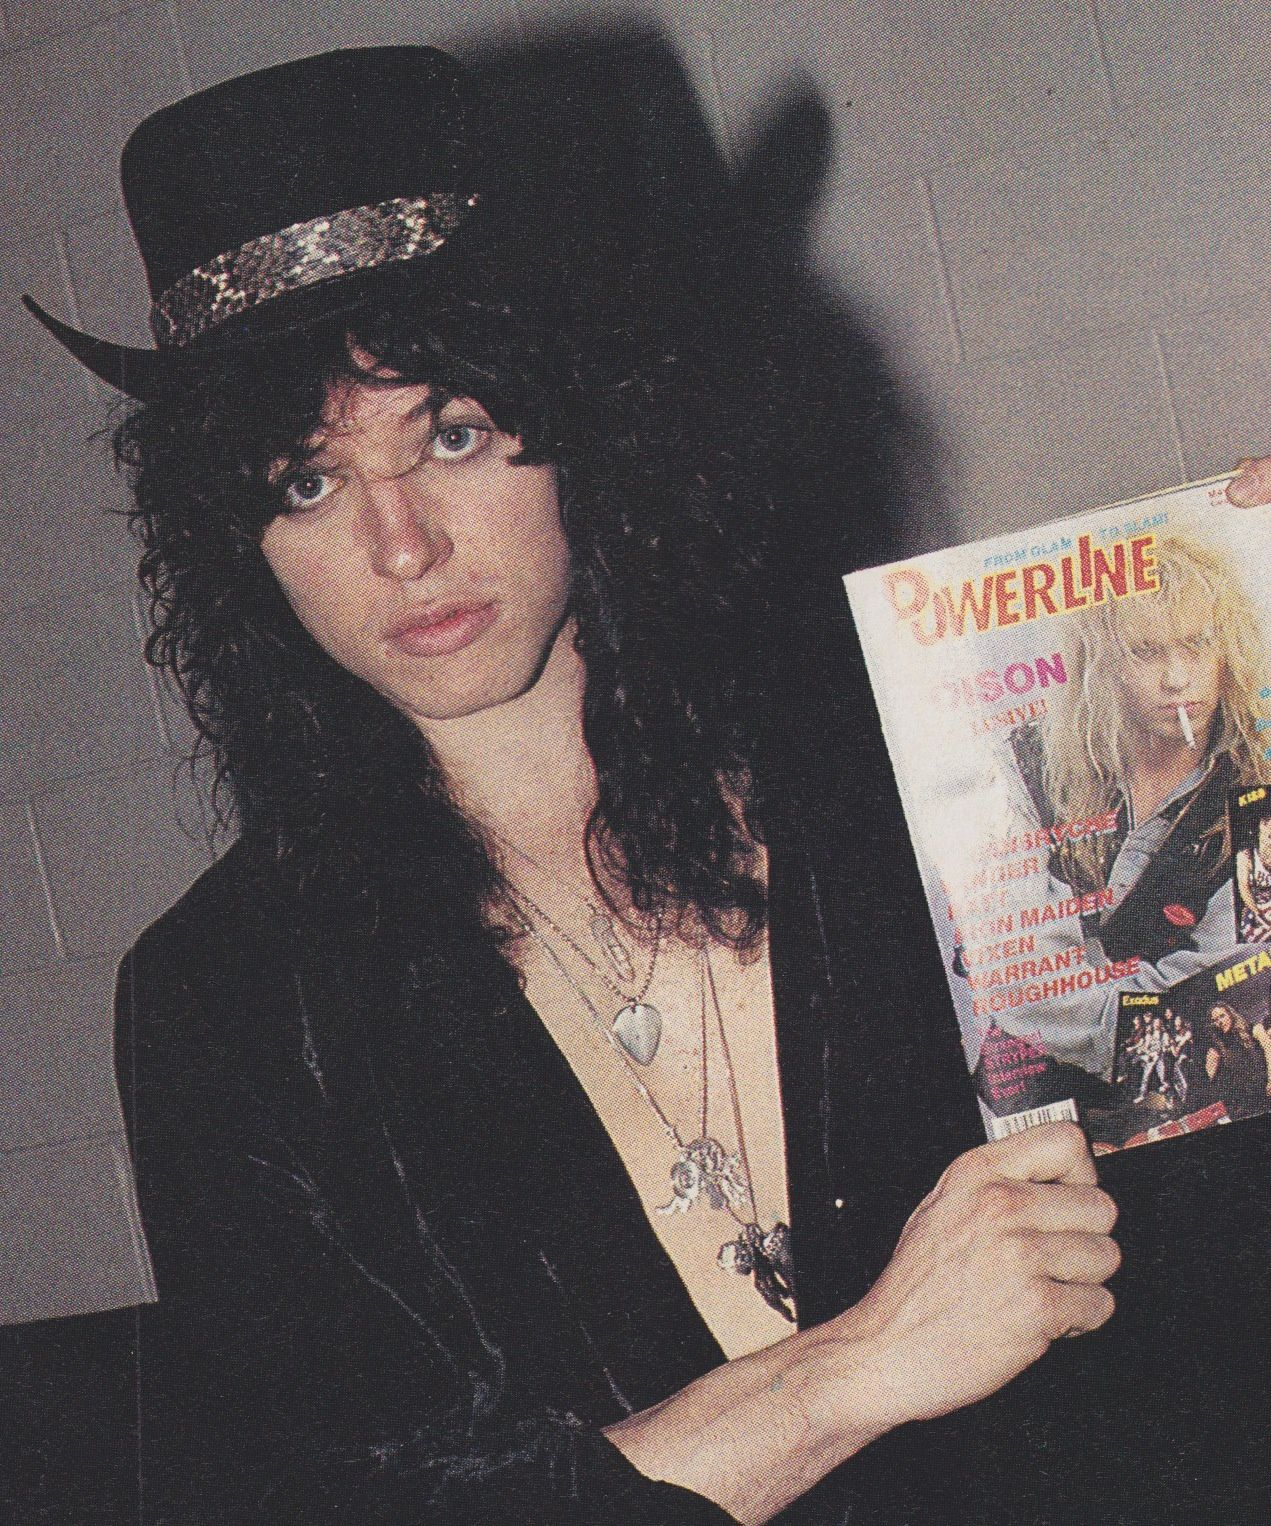 Tom Keifer, Cinderella with a copy of Powerline Magazine (1989)